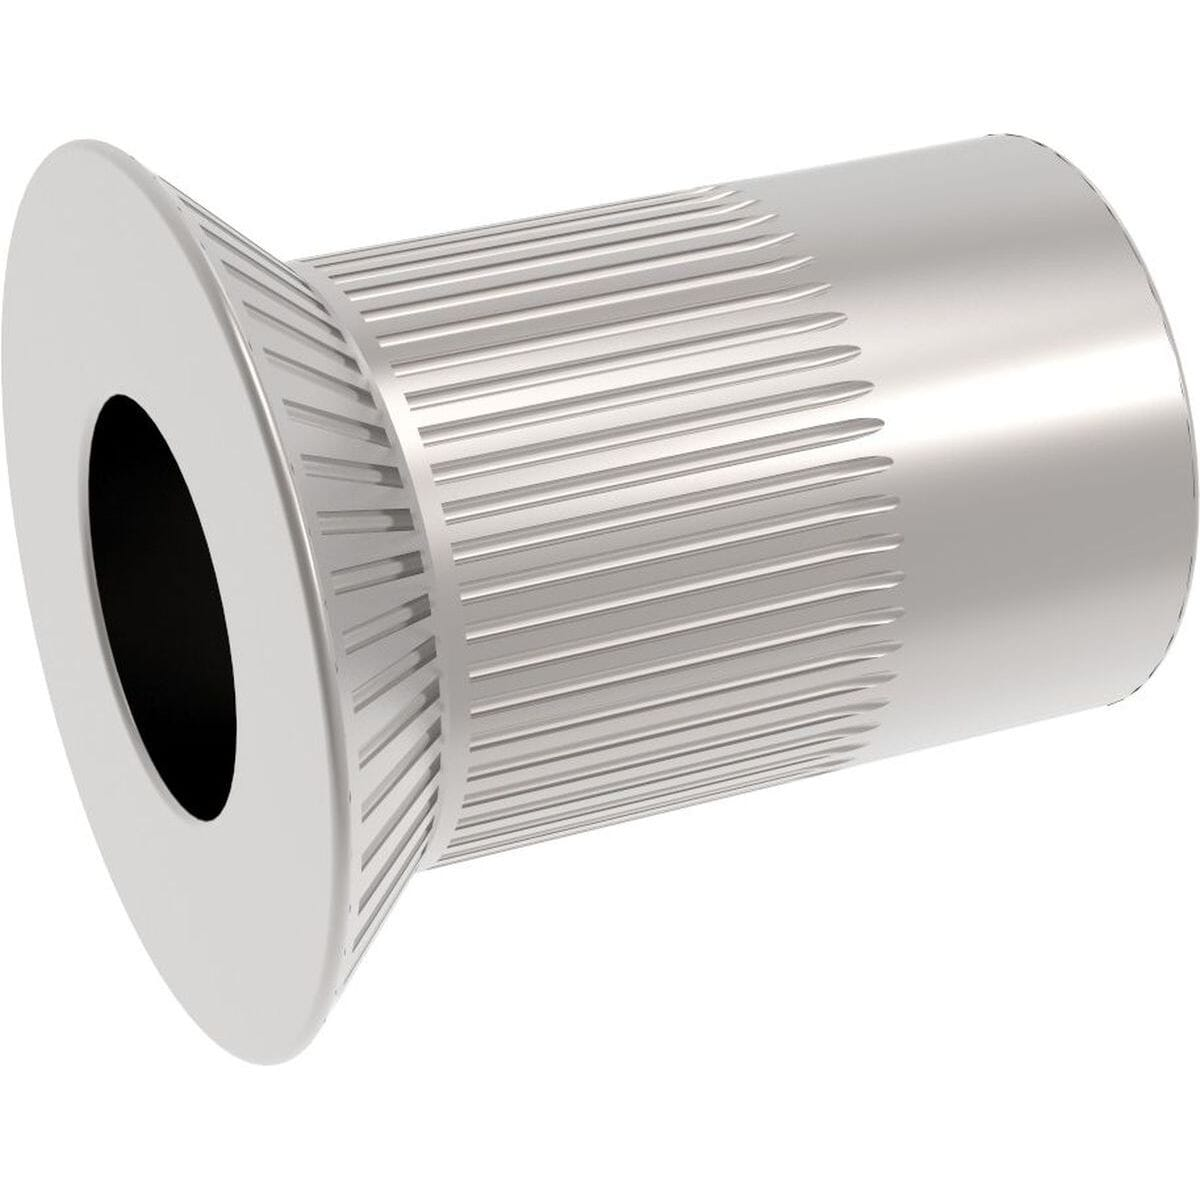 M8 x 19mm Knurled Countersunk Rivet Nuts - Stainless Steel (A2)